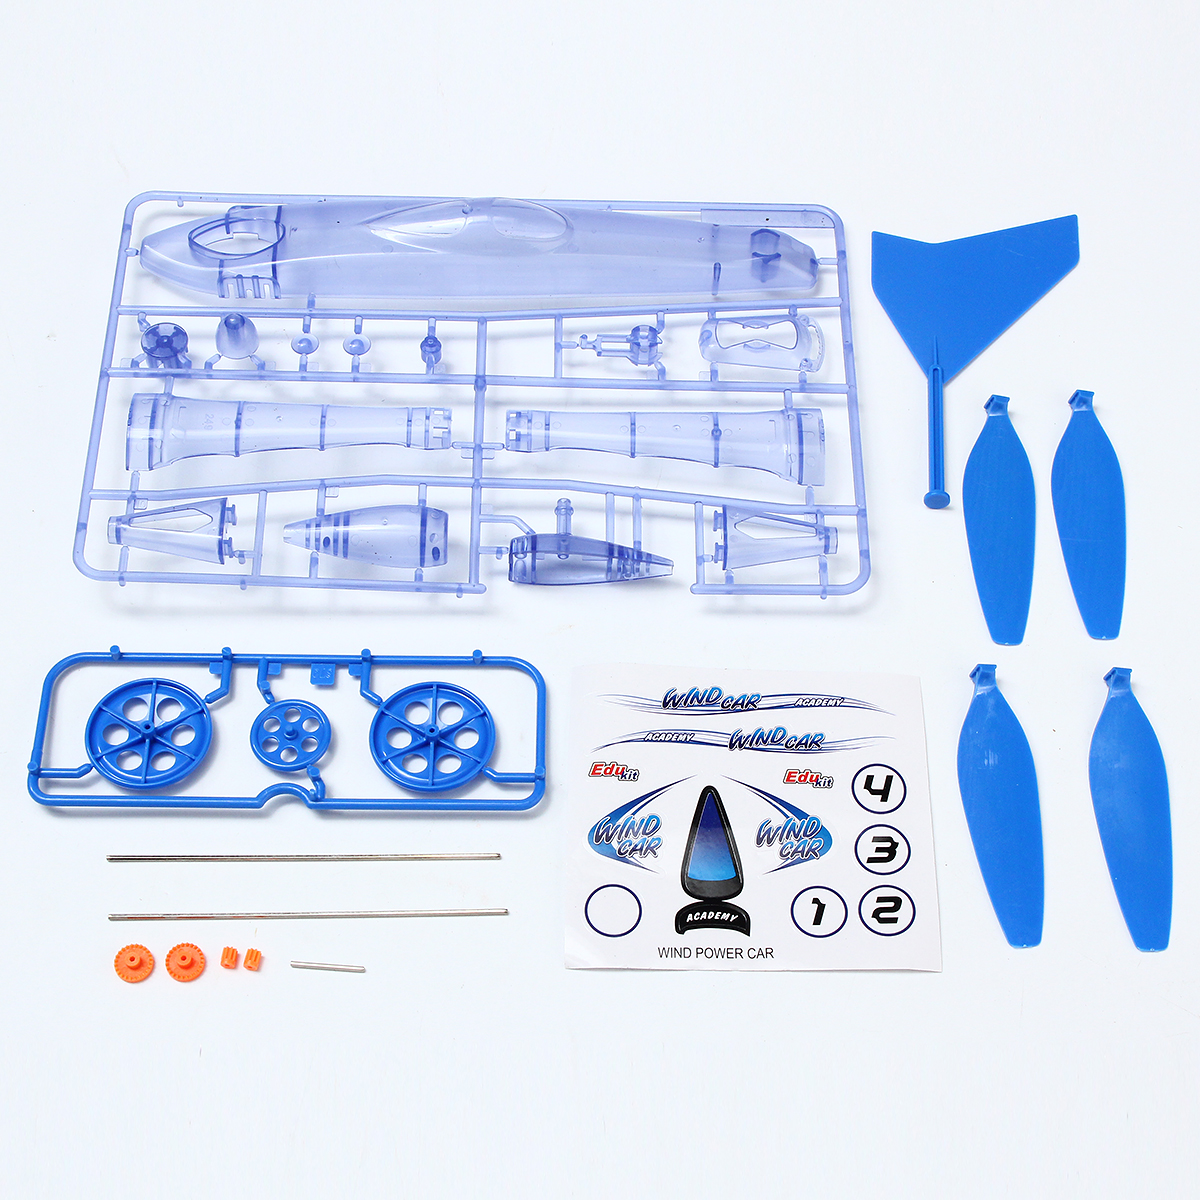 DIY Technology Invention Wind Power Car Windmill Assembly Model Kit